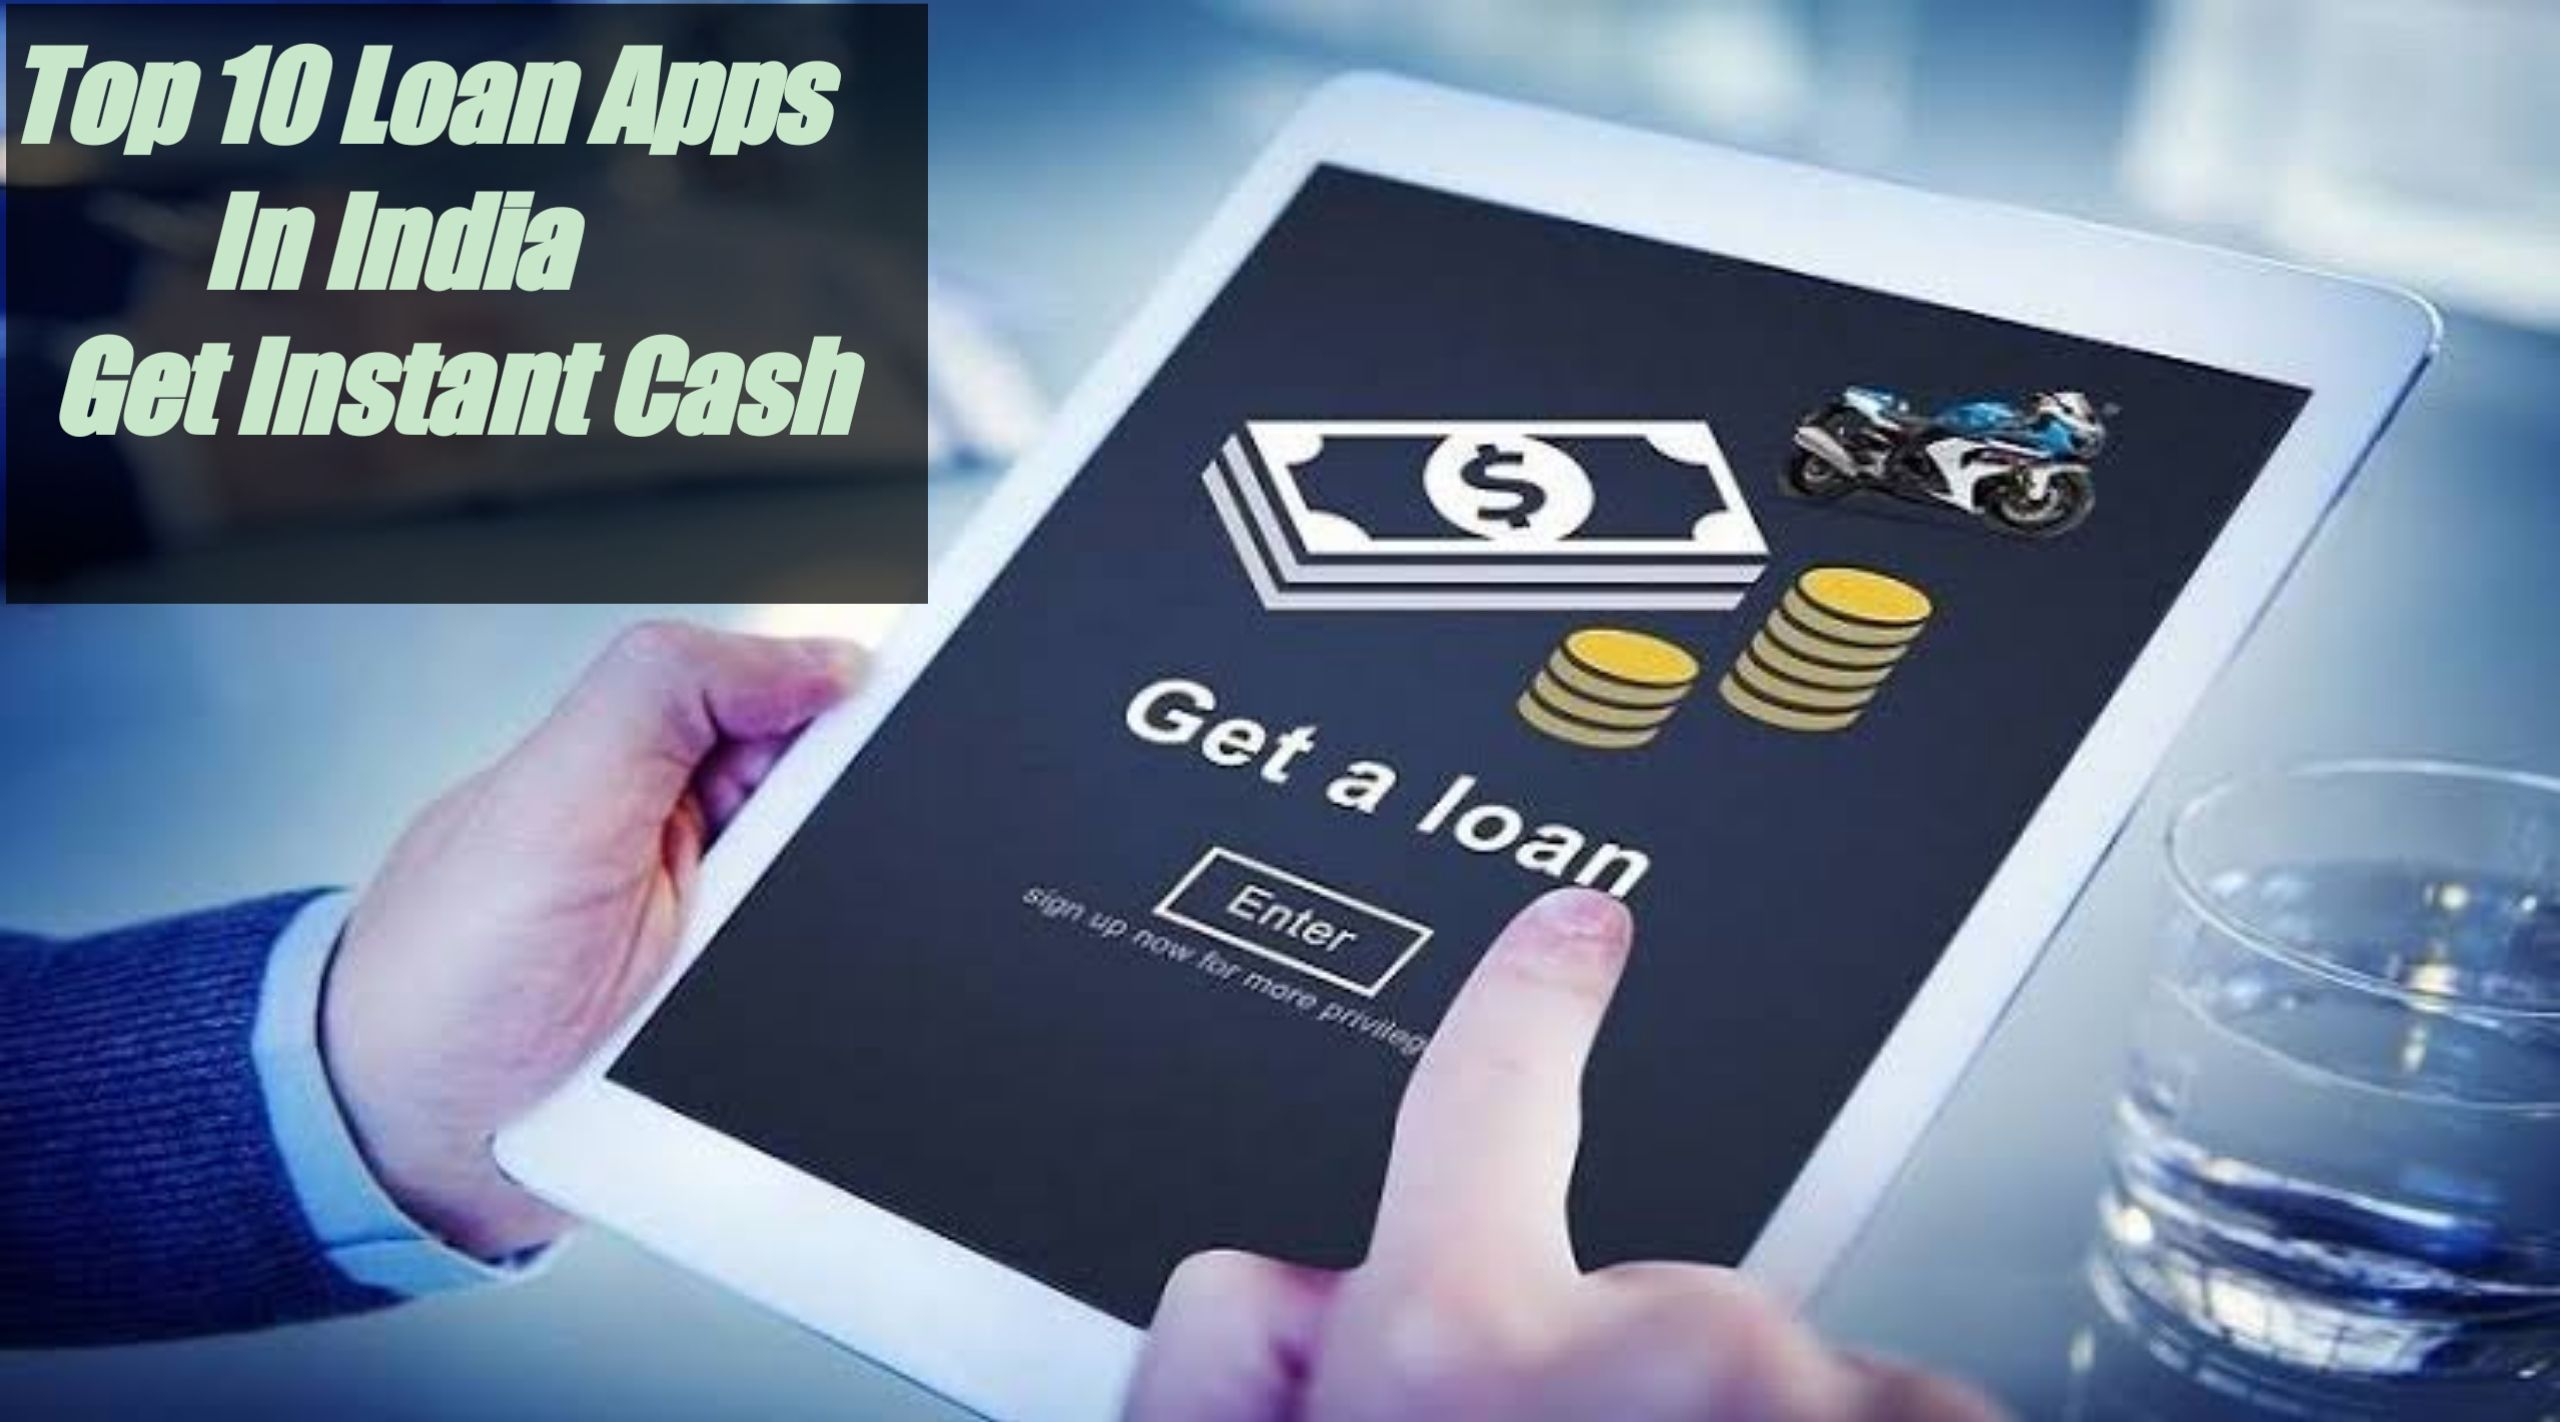 Top 10 Loan Apps In India To Get Instant Cash Online Top 10 Loan Apps List Top 10 Loan Apps To Get Online I Online Loans Personal Loans Online Personal Loans